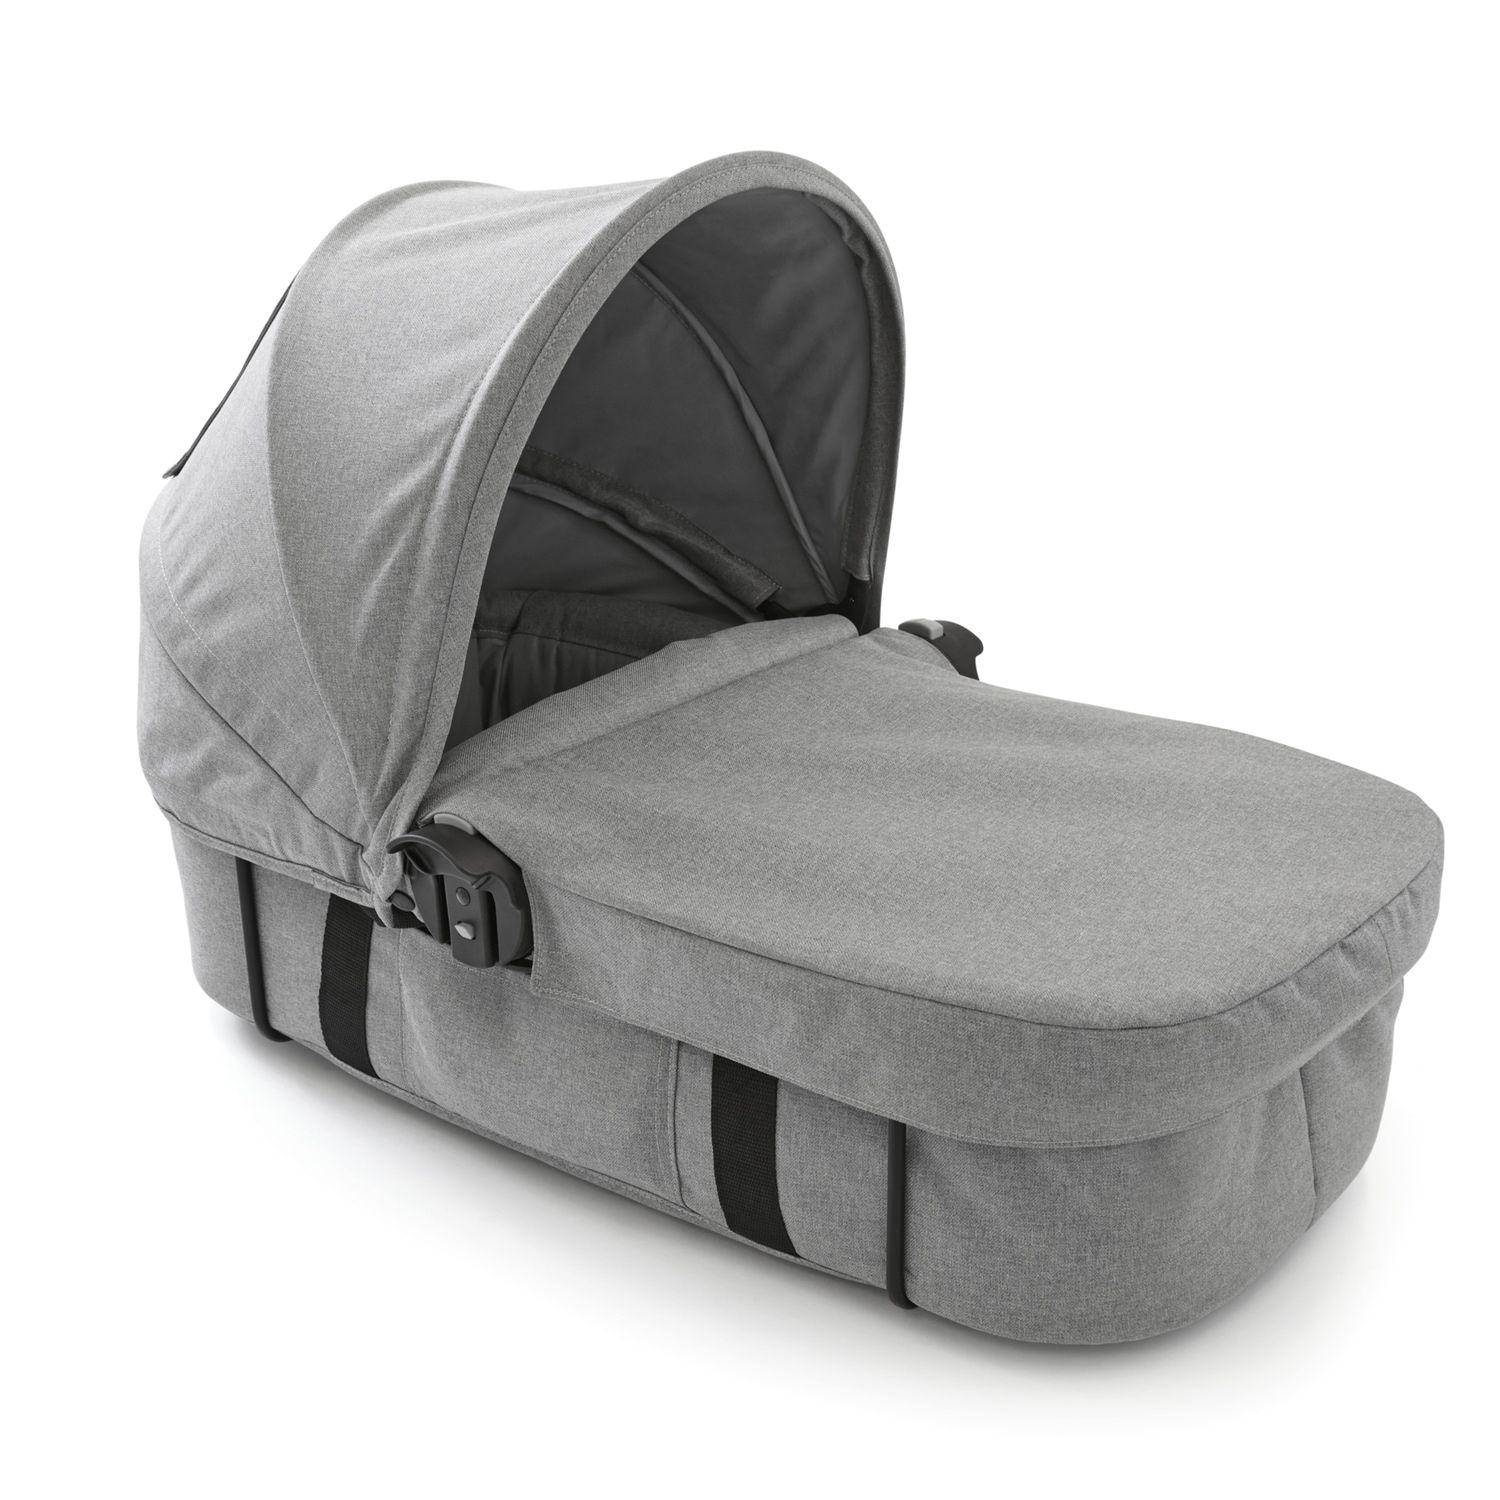 Baby Jogger City Select LUX Accessory Kit City